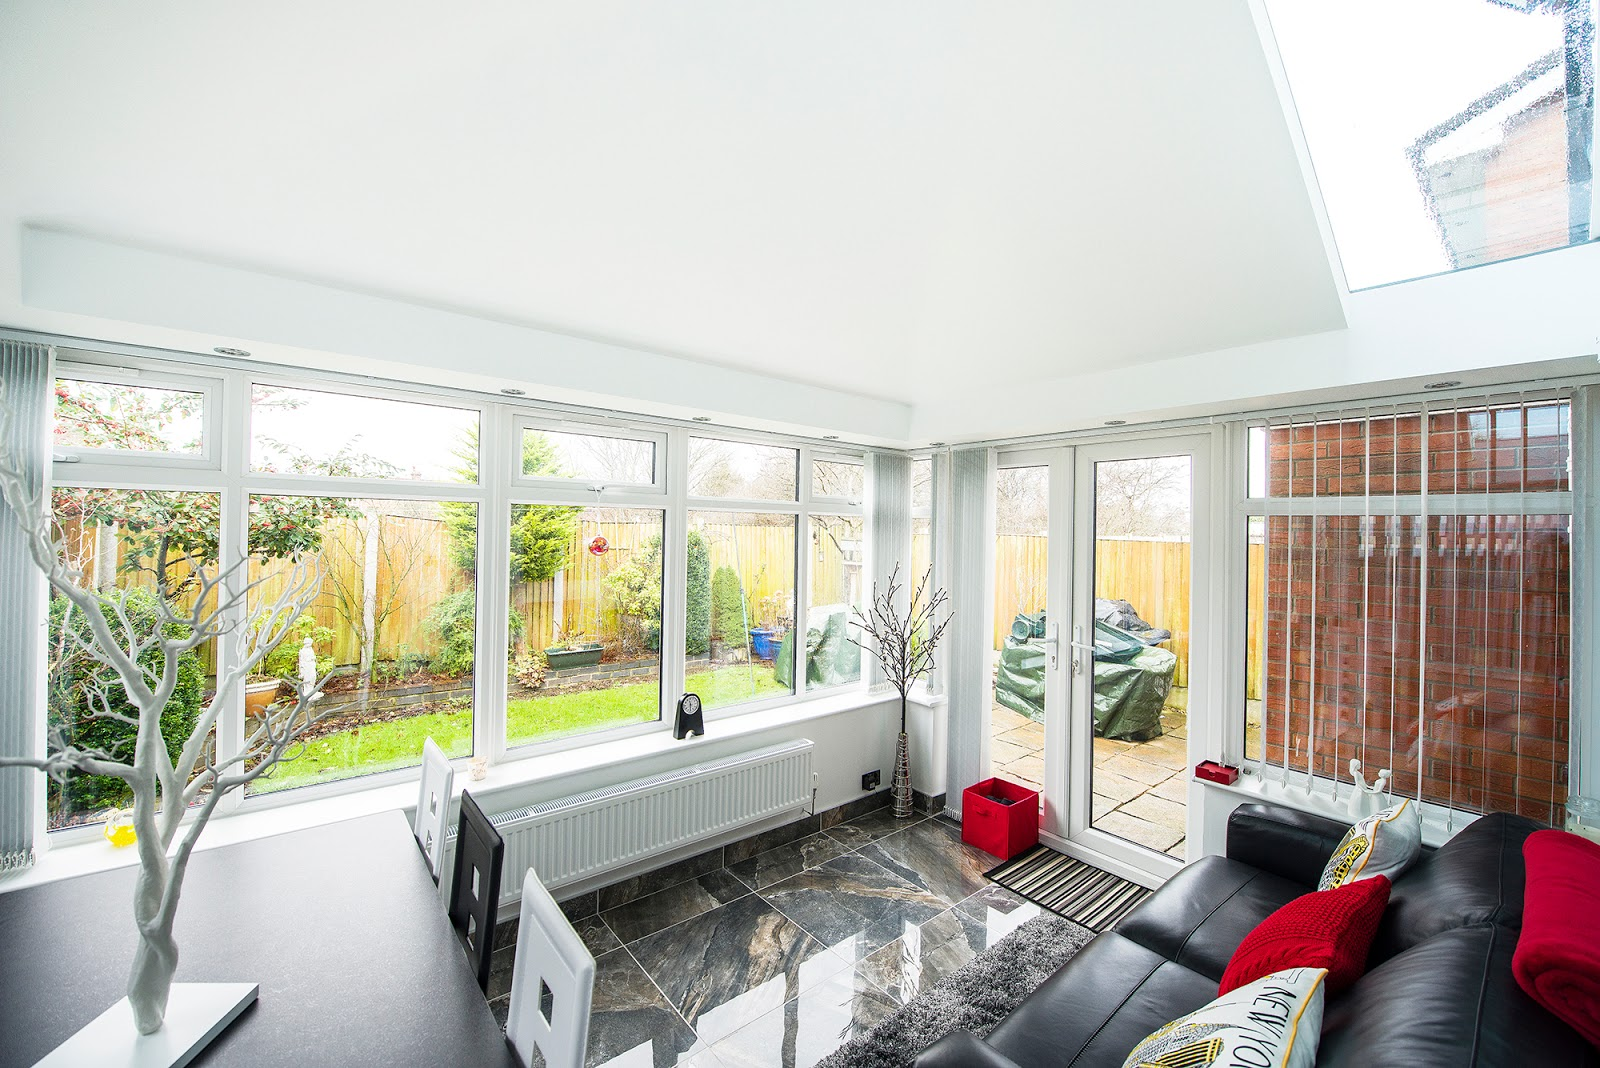 LivinROOF : Transforming your Conservatory this Winter! | Feels Like ...